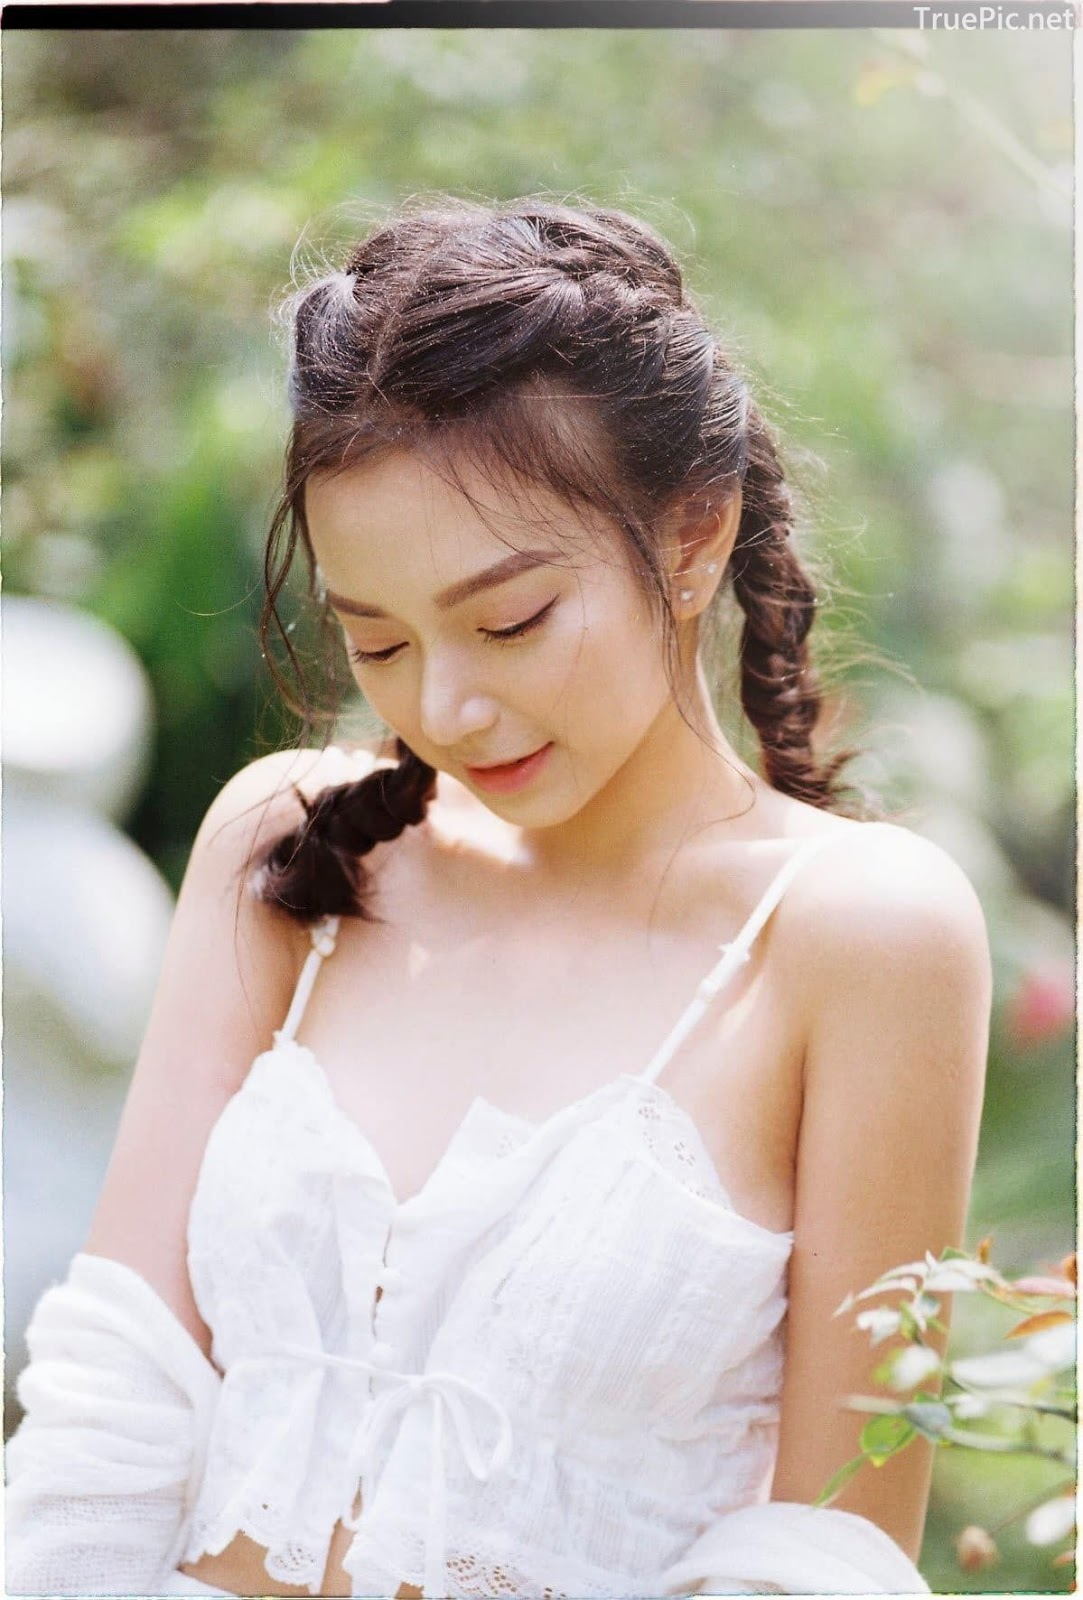 Vietnamese Sexy Model - Vu Ngoc Kim Chi - Beautiful in white - TruePic.net- Picture 29